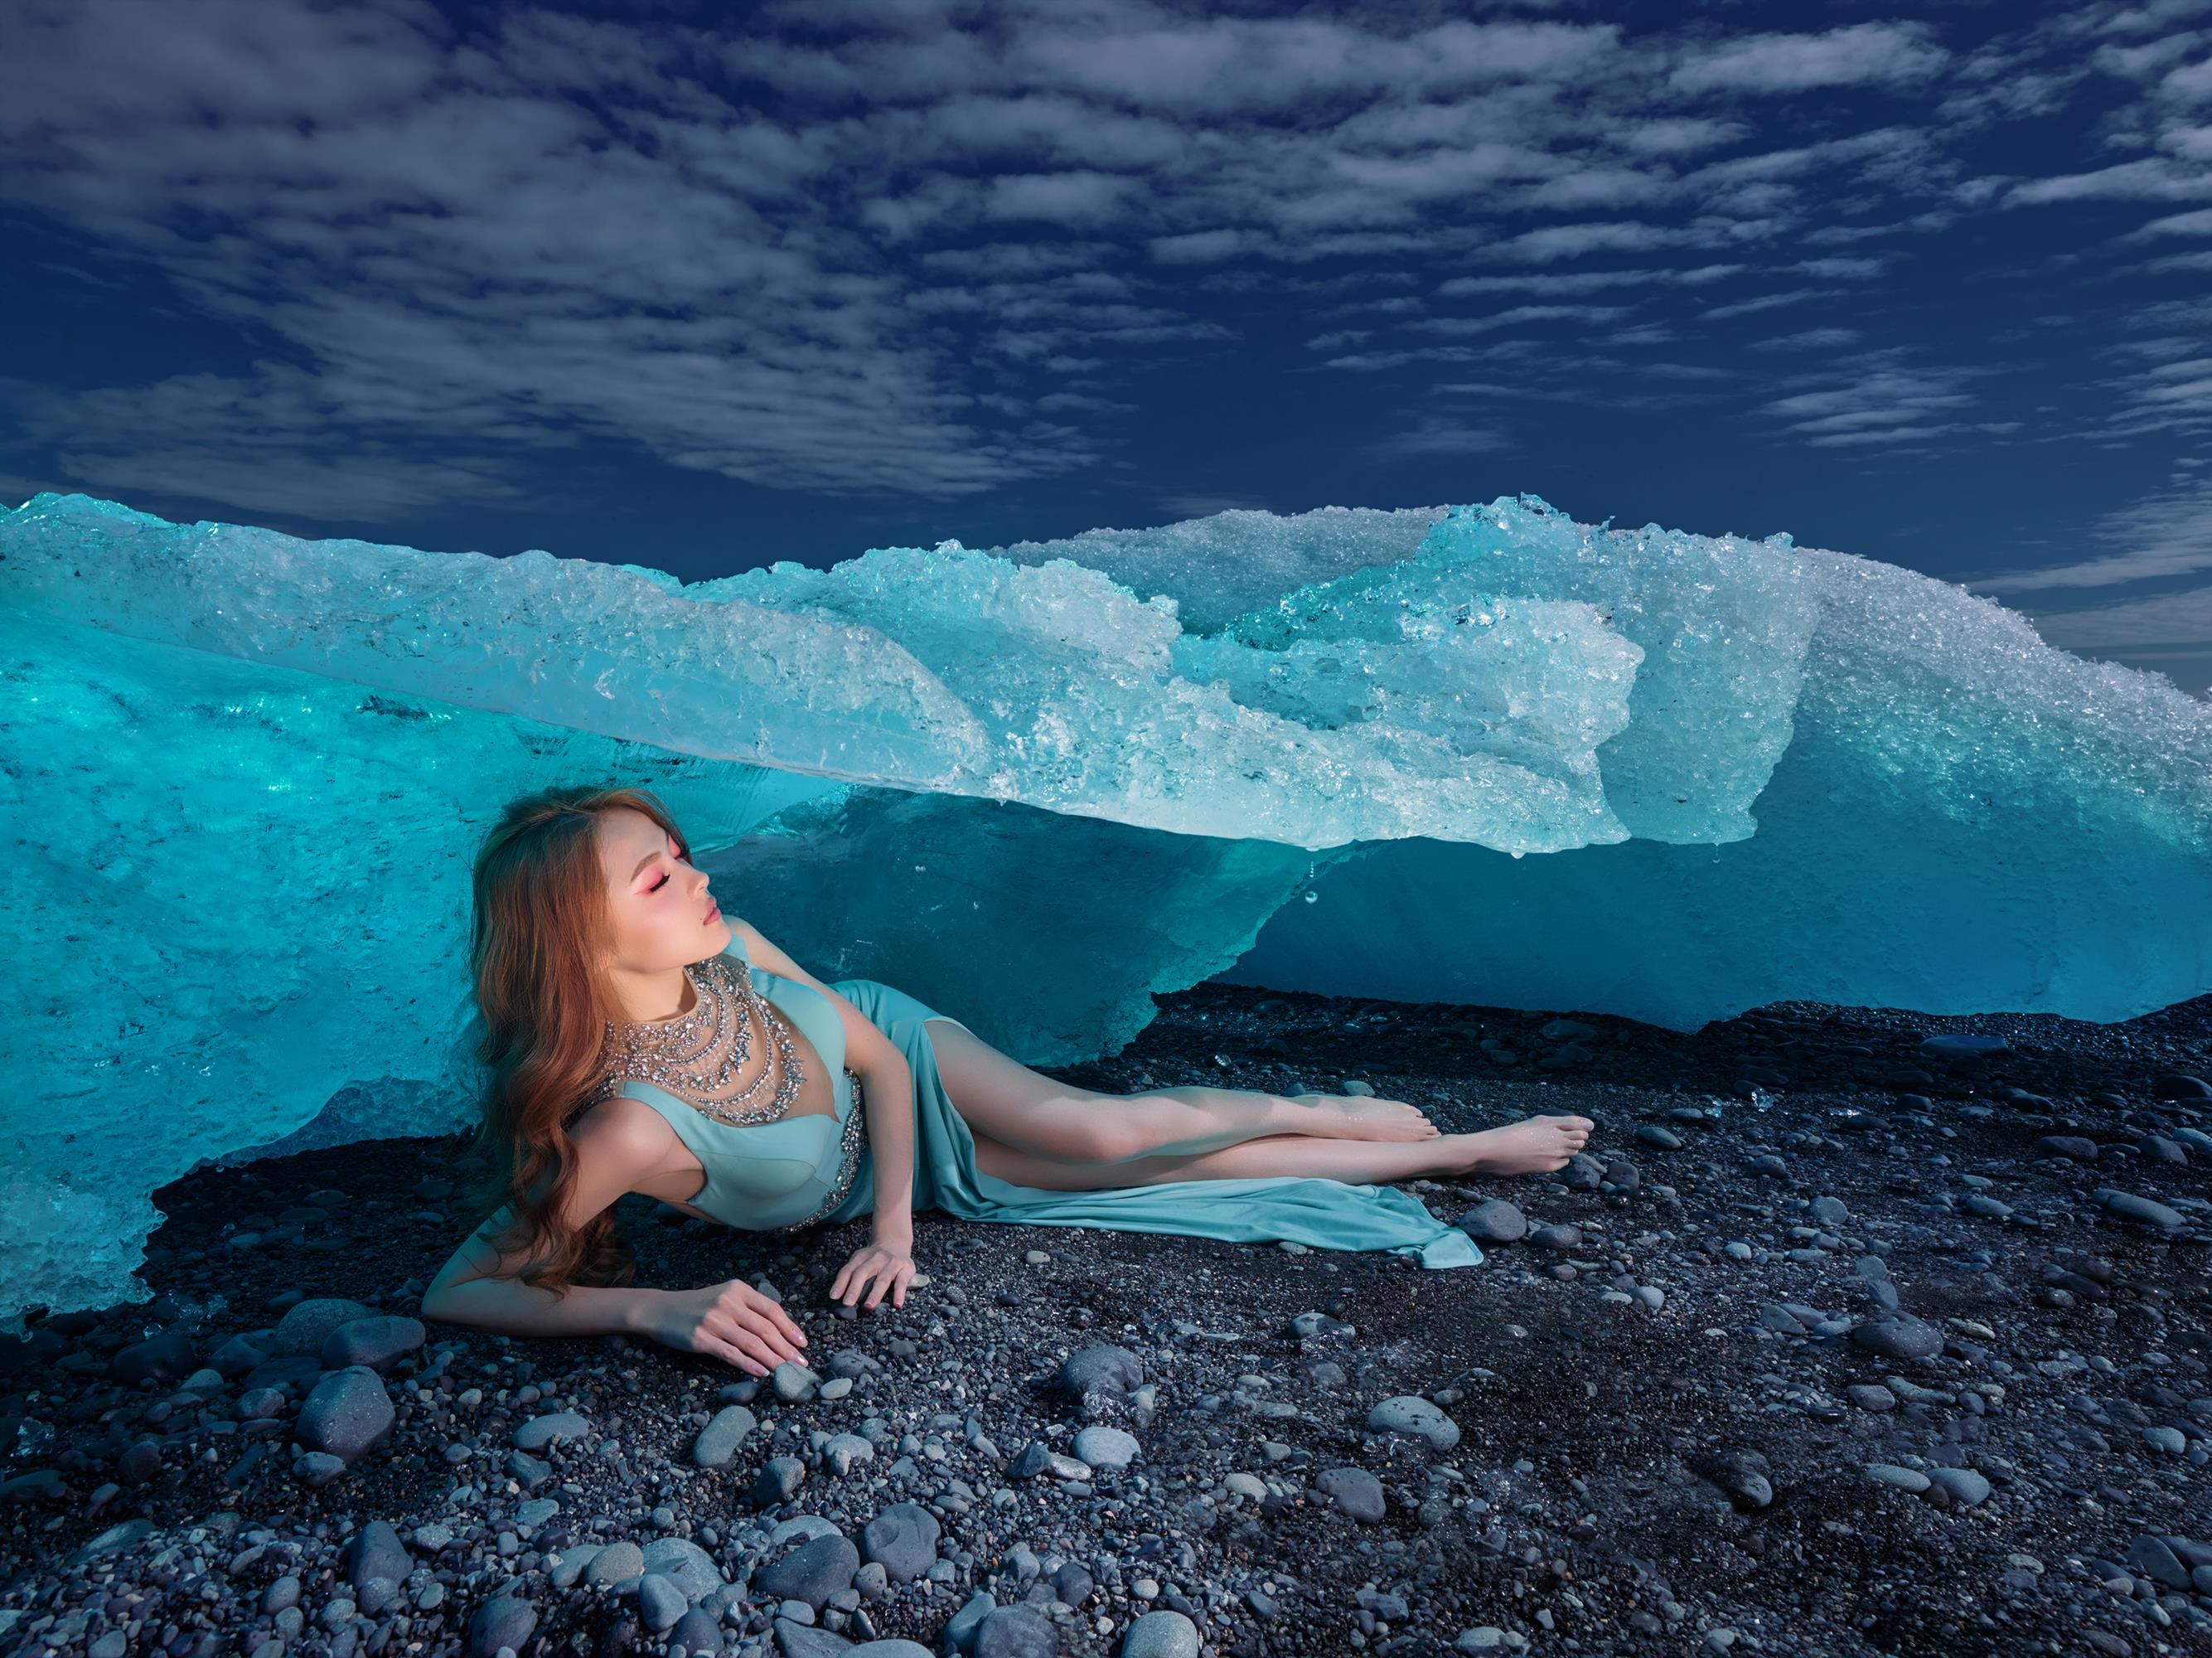 profoto-blog-muse-chan-improvisation-in-iceland-with-the-help-of-profoto-b1-2a-600x450